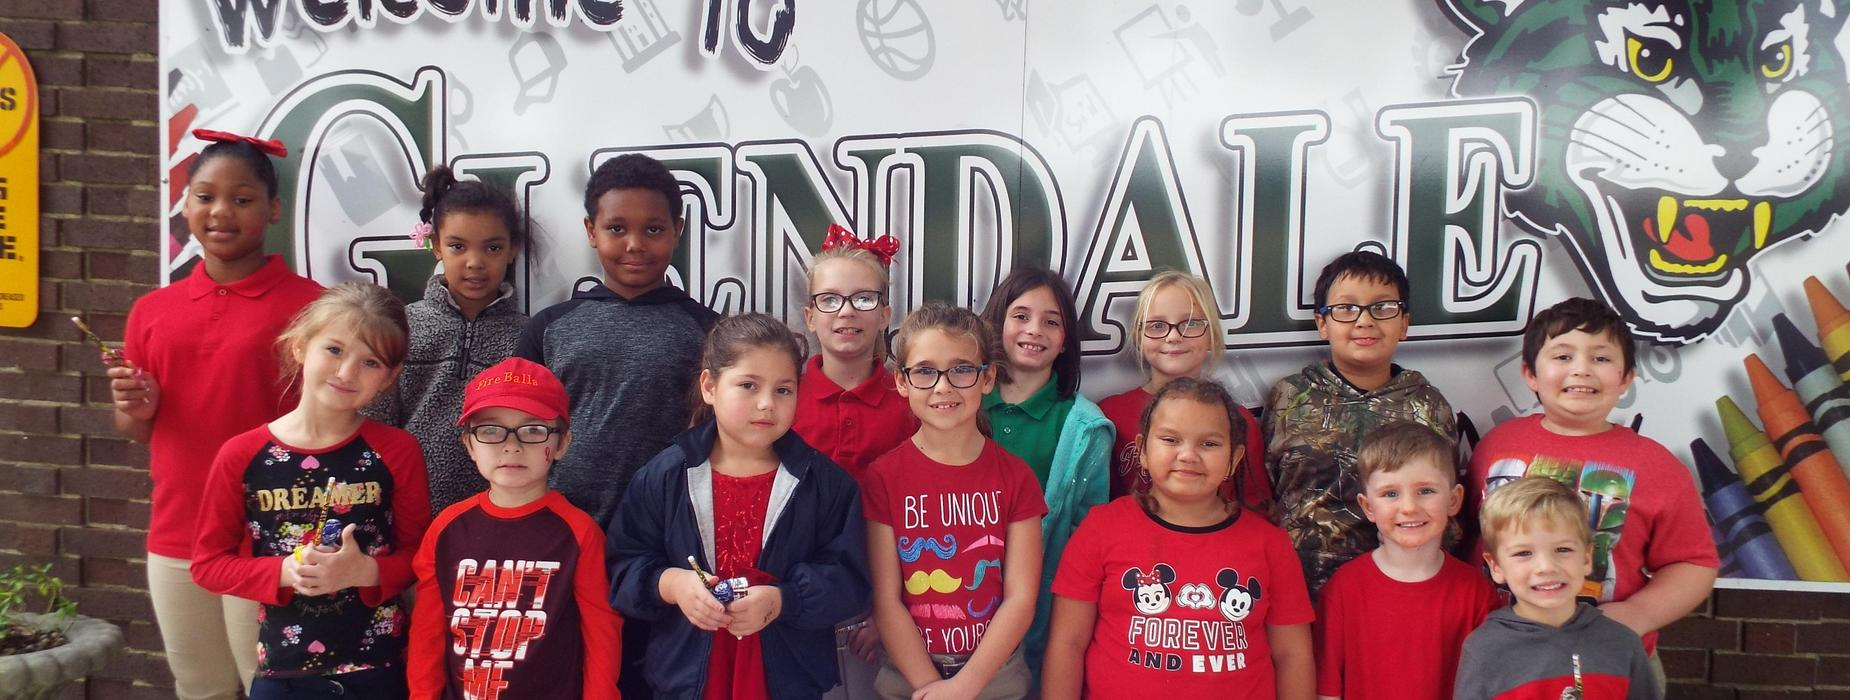 Glendale Students of the Week for October 15- 19, 2018.